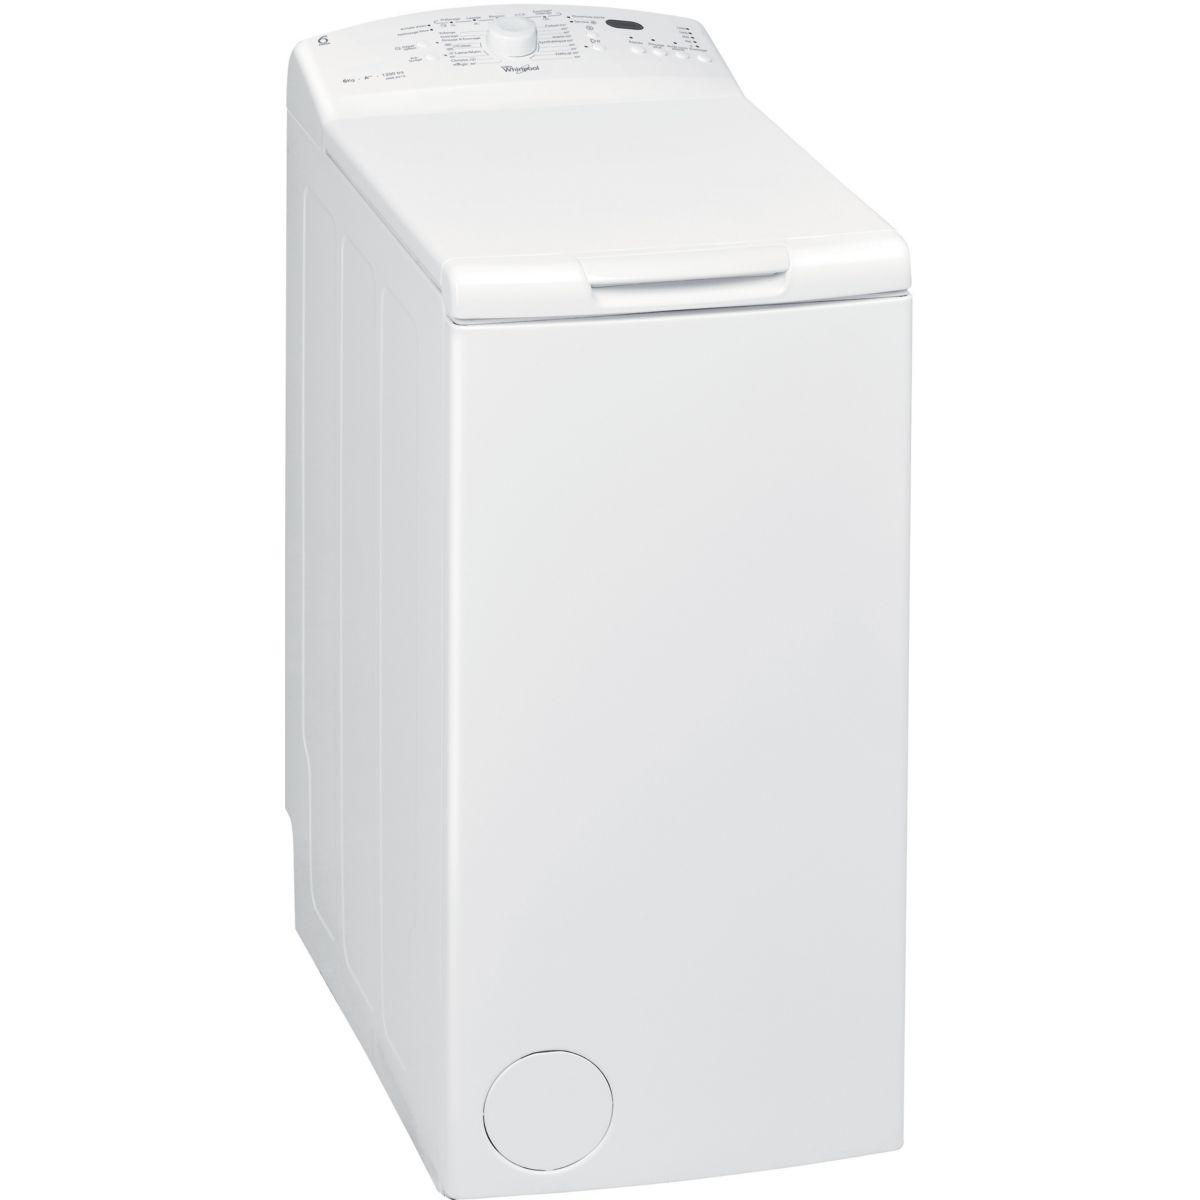 Lave-linge top whirlpool awe 6215 - 2% de remise imm�diate avec le code : wd2 (photo)